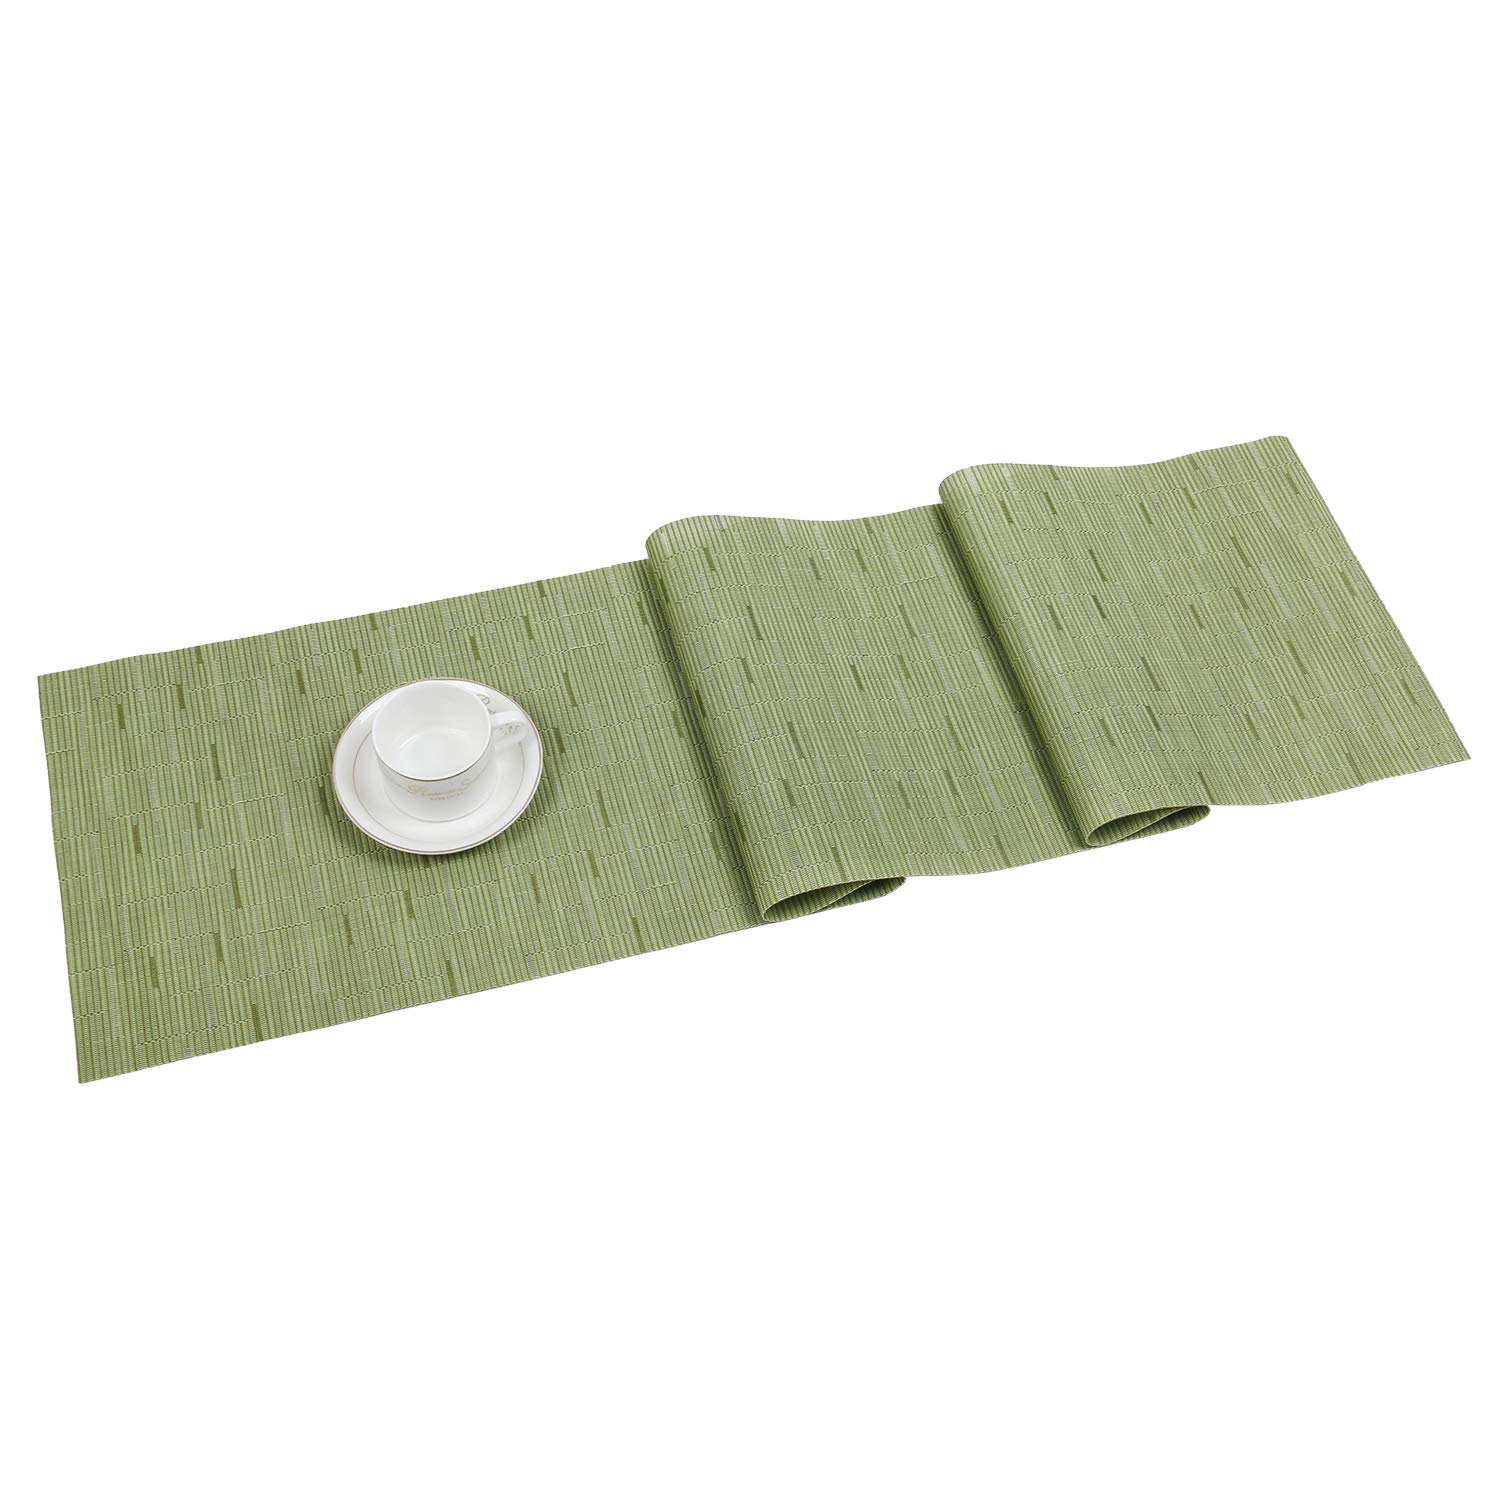 SHACOS Woven Vinyl Table Runner for Kitchen Dining Table Wipe Clean Washable PVC Table Runner (Olive Green, 12x54 inch)